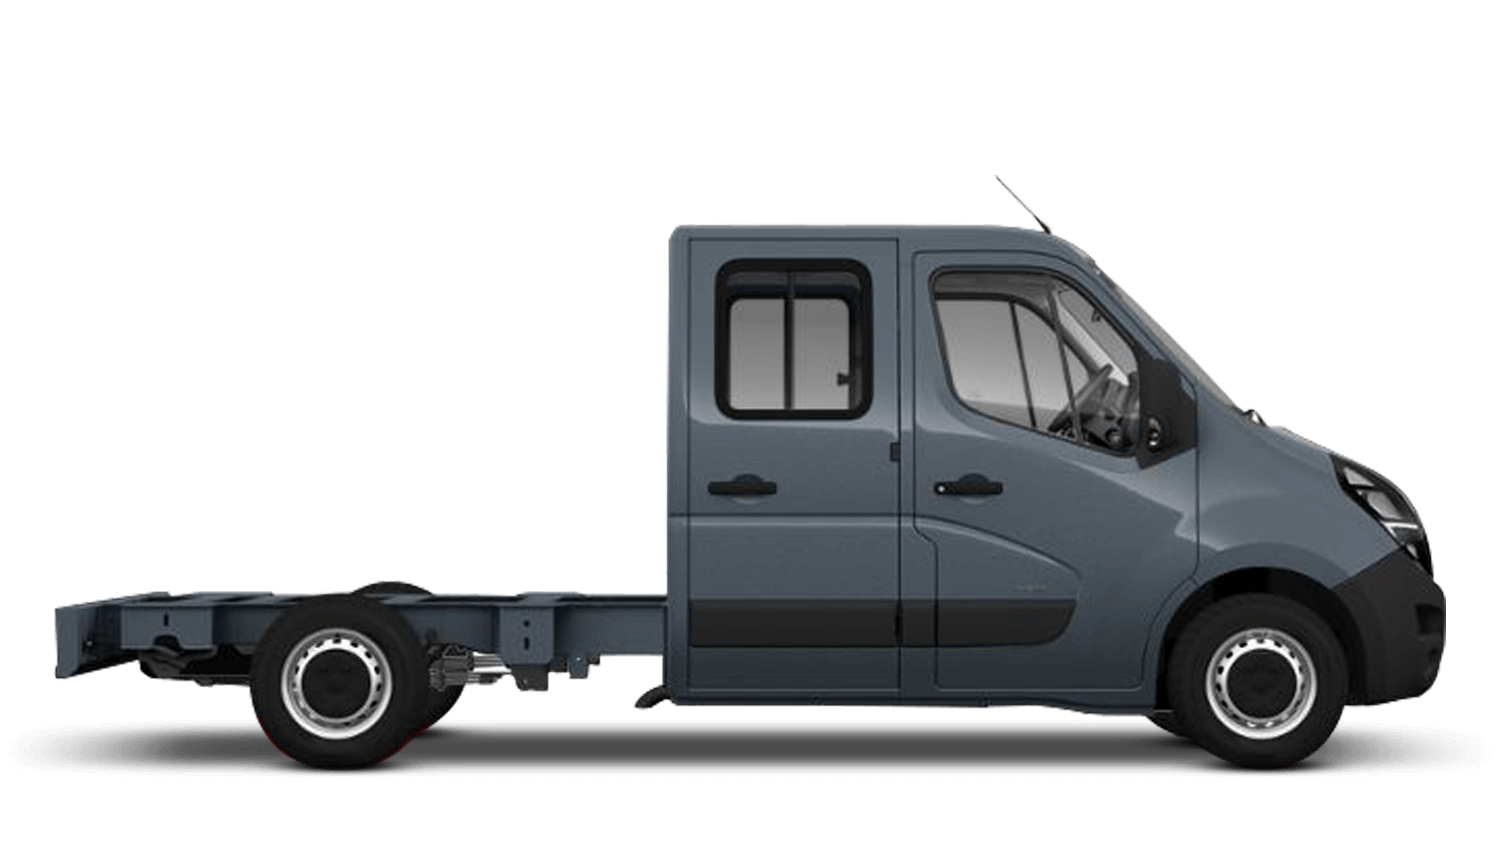 Ambient Blue (Metallic) New Vauxhall Movano Conversions